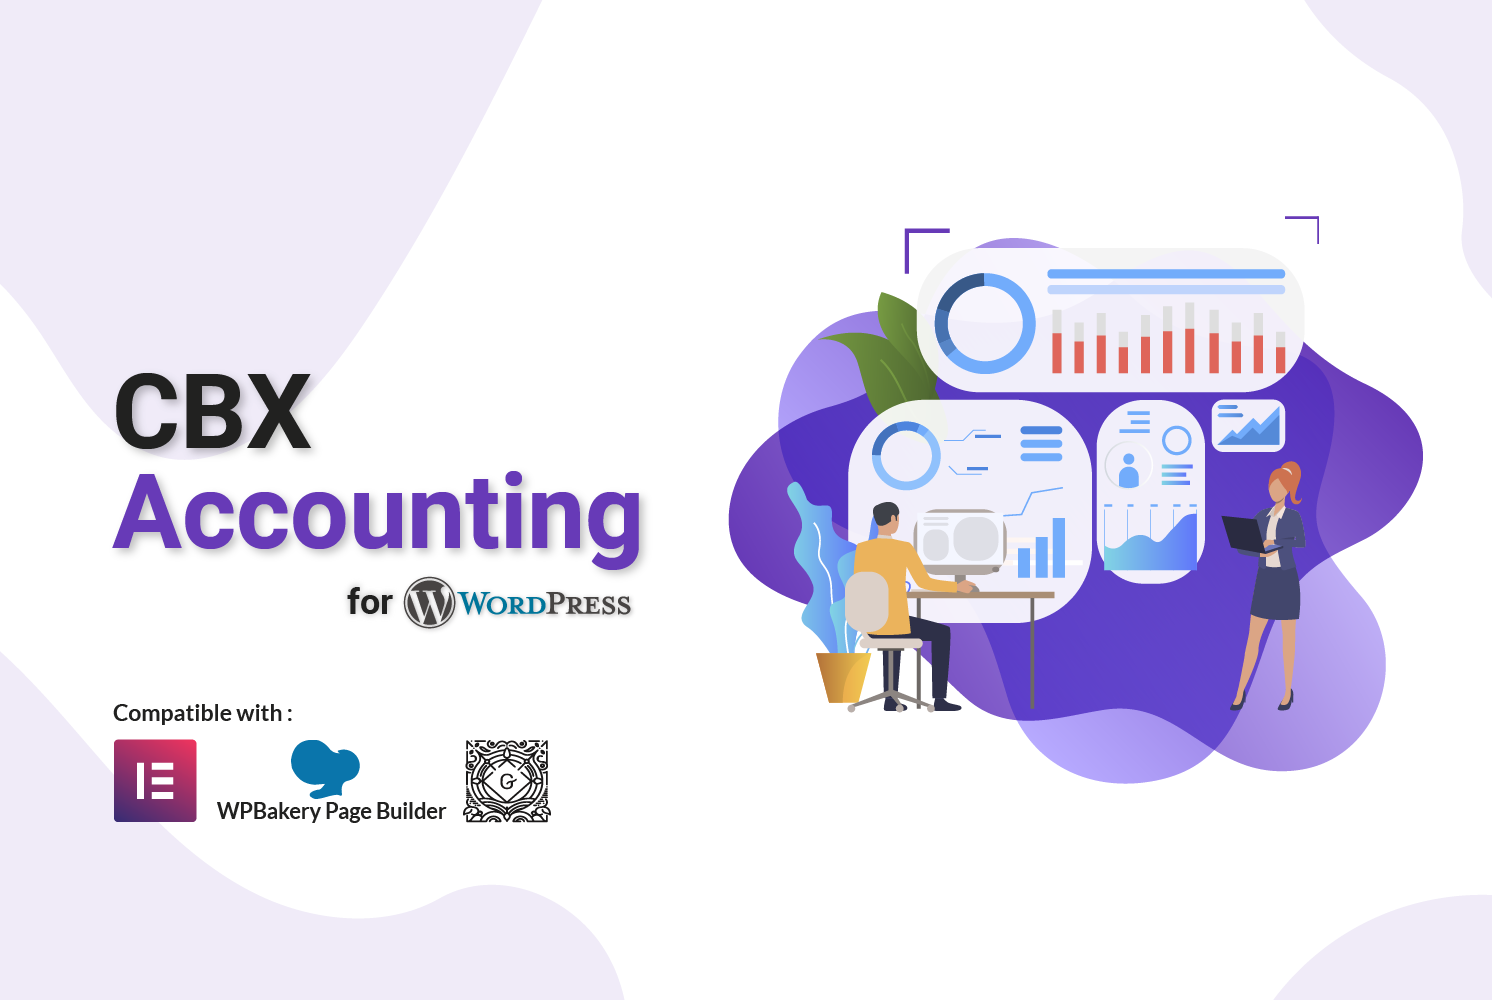 CBX Accounting for WordPress